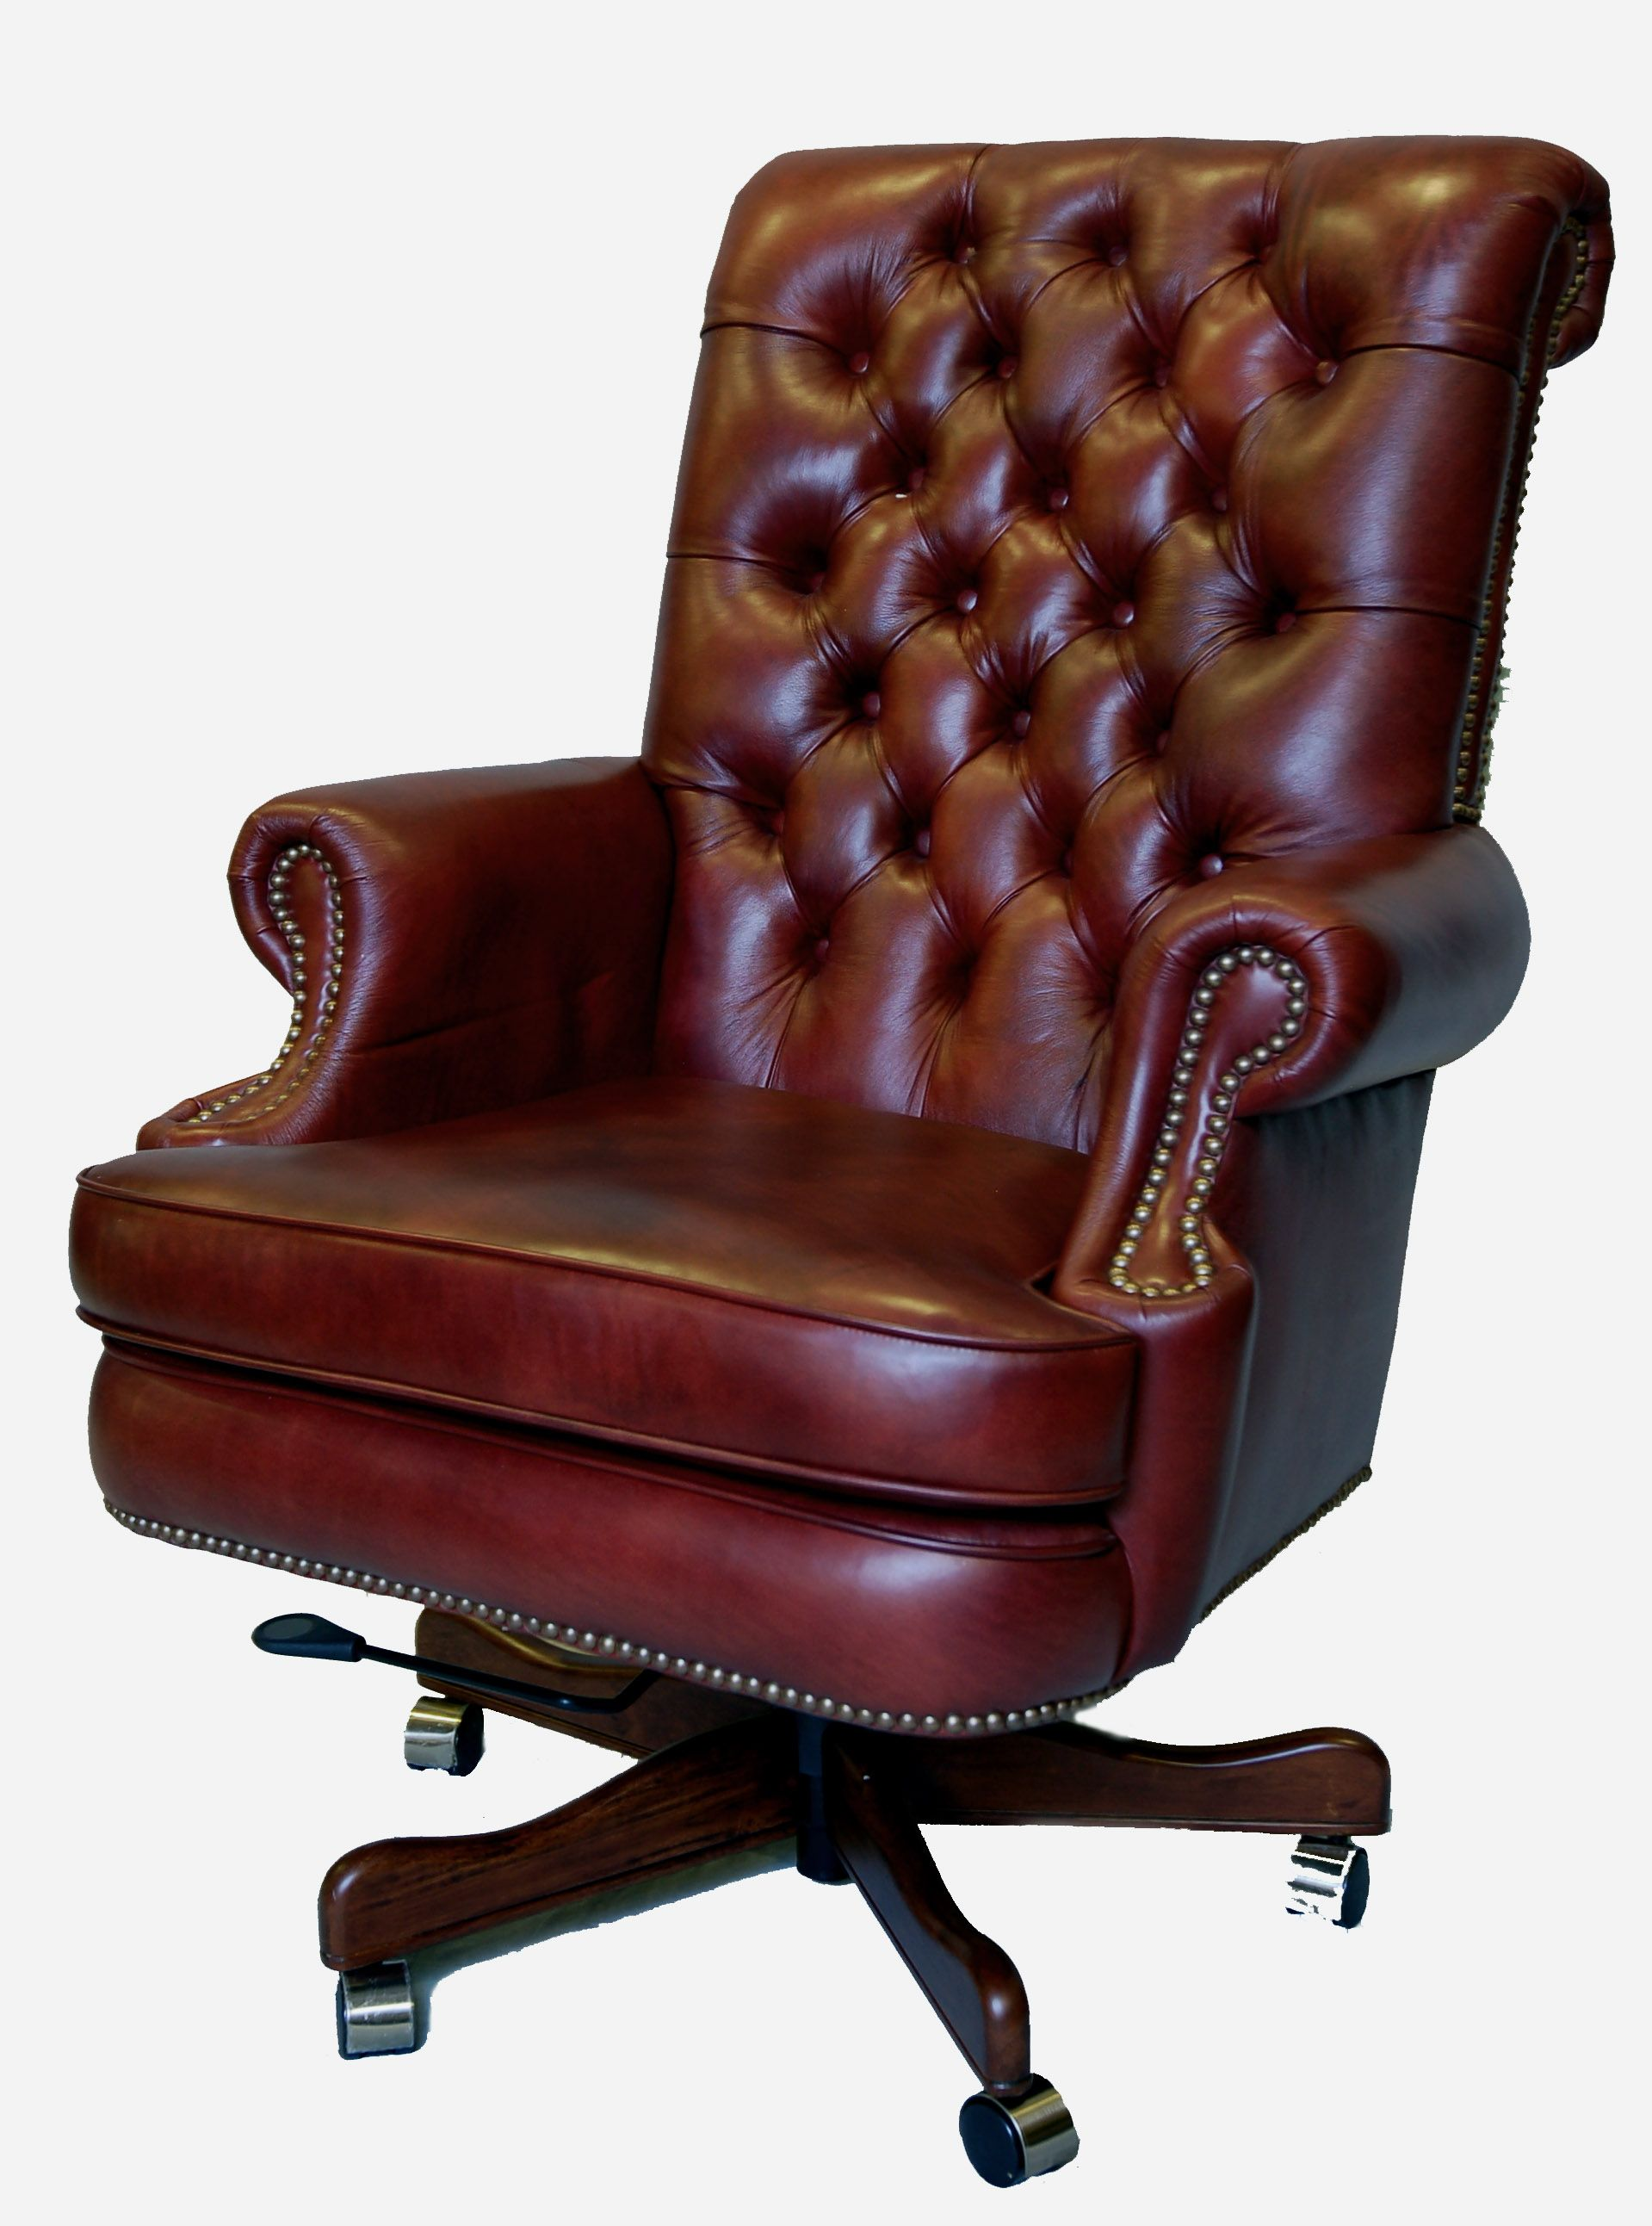 Antique Desk Chairs Ebay Luxury Office Chairs Executive Office Chairs Leather Office Furniture